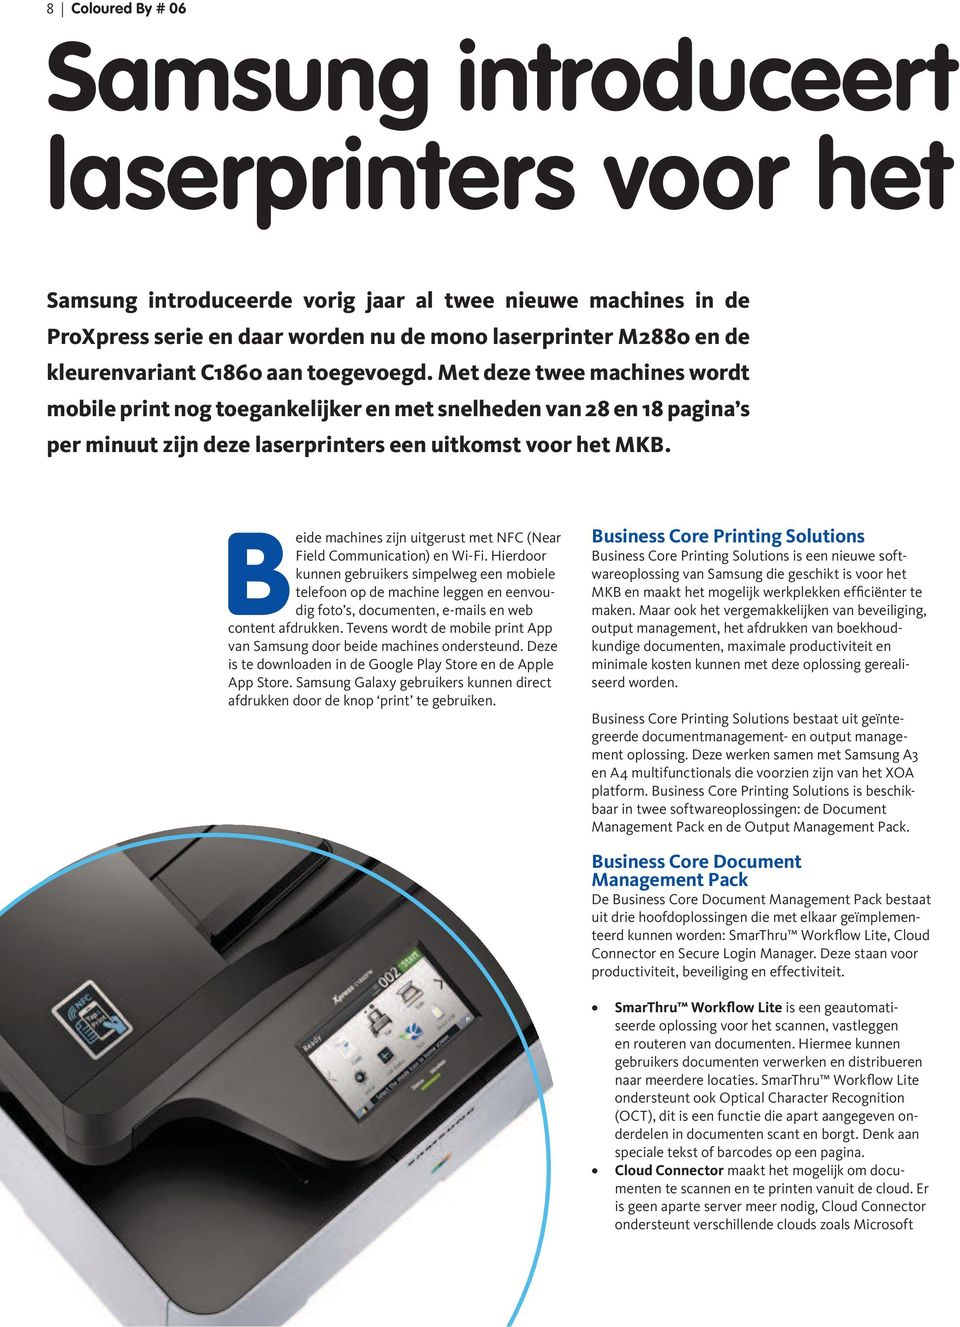 Beide machines zijn uitgerust met NFC (Near Field Communication) en Wi-Fi.